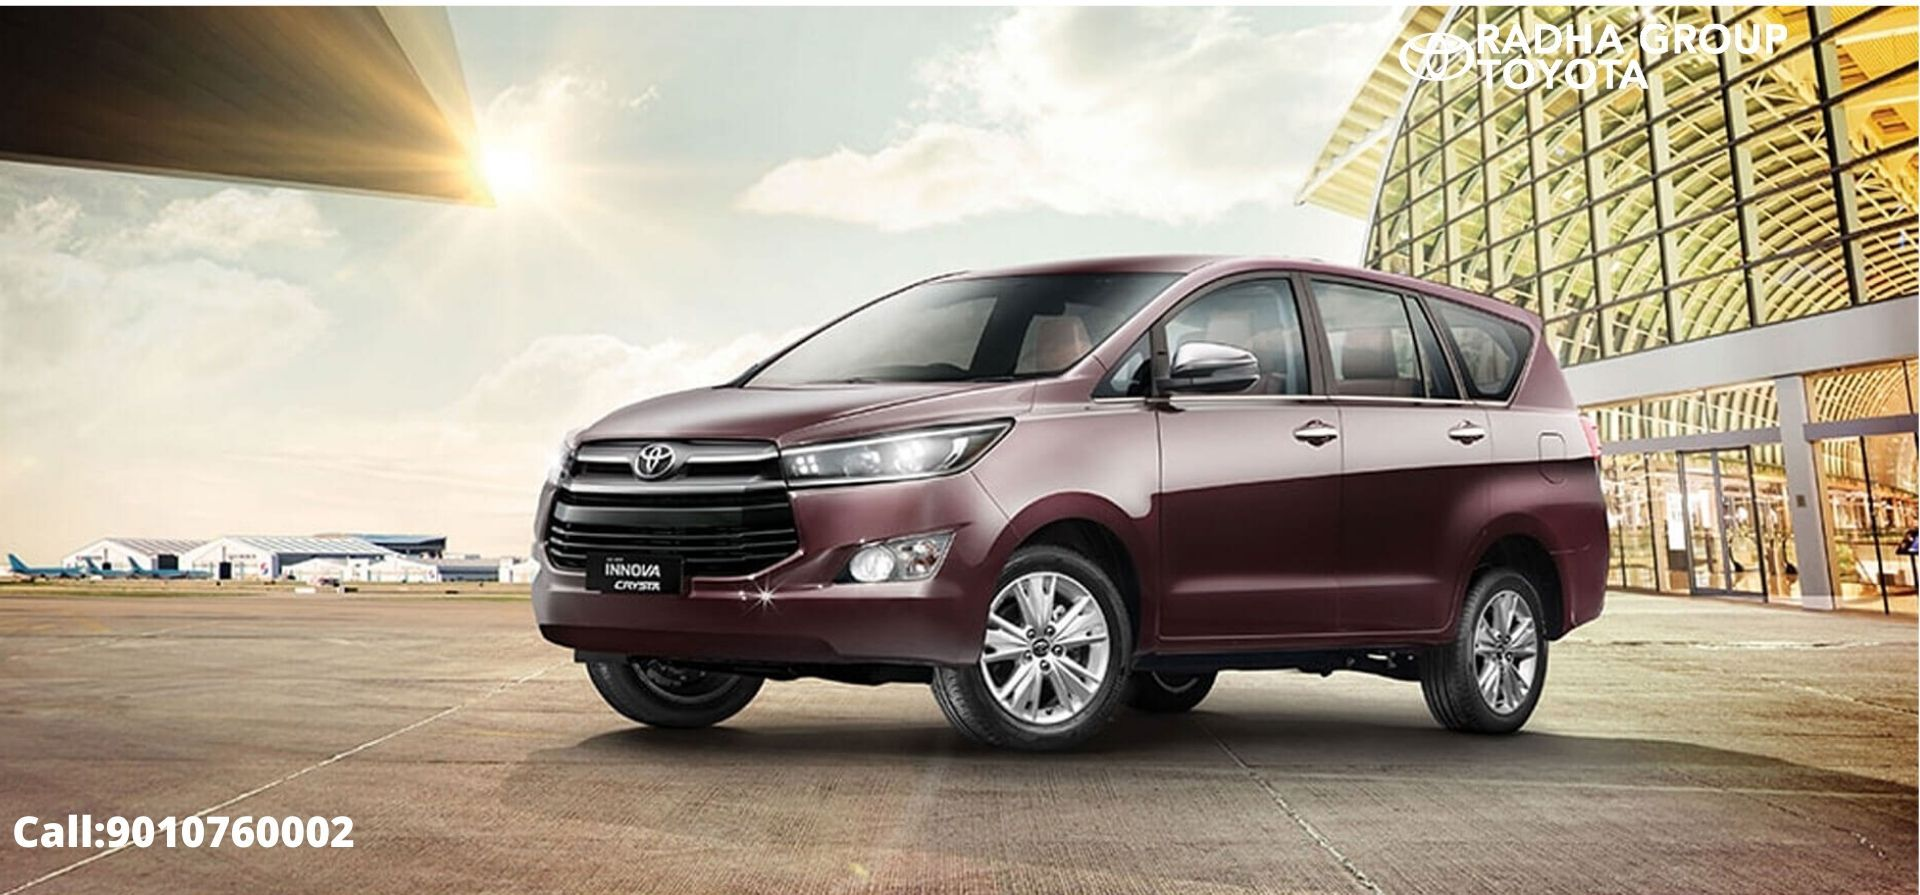 Toyota Innova Crysta Price In Hyderabad Vijayawada Features Mileage Colors Images In 2020 Toyota Innova Toyota Auto News